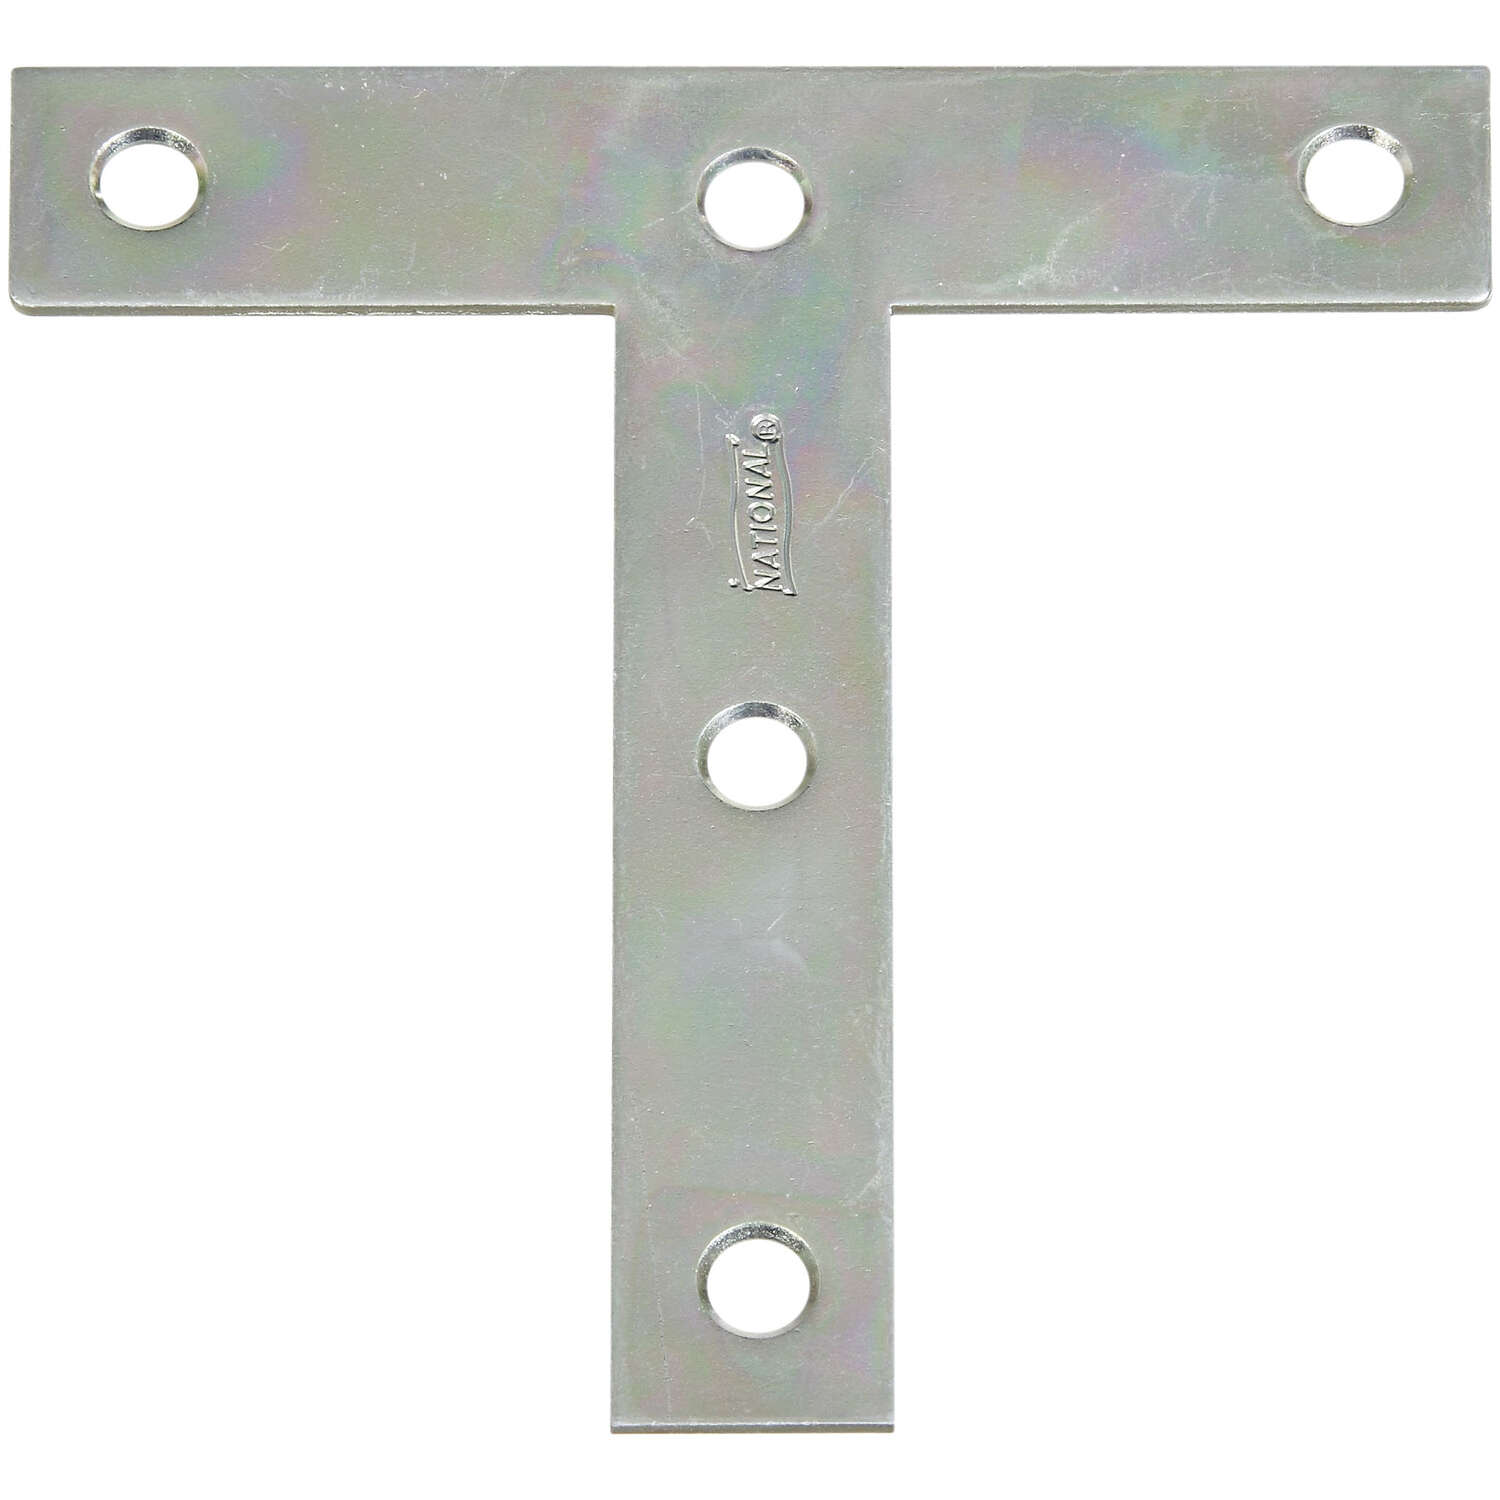 National Hardware 4 in. H x 4 in. W x 0.07 in. D Zinc-Plated Steel Tee Plate